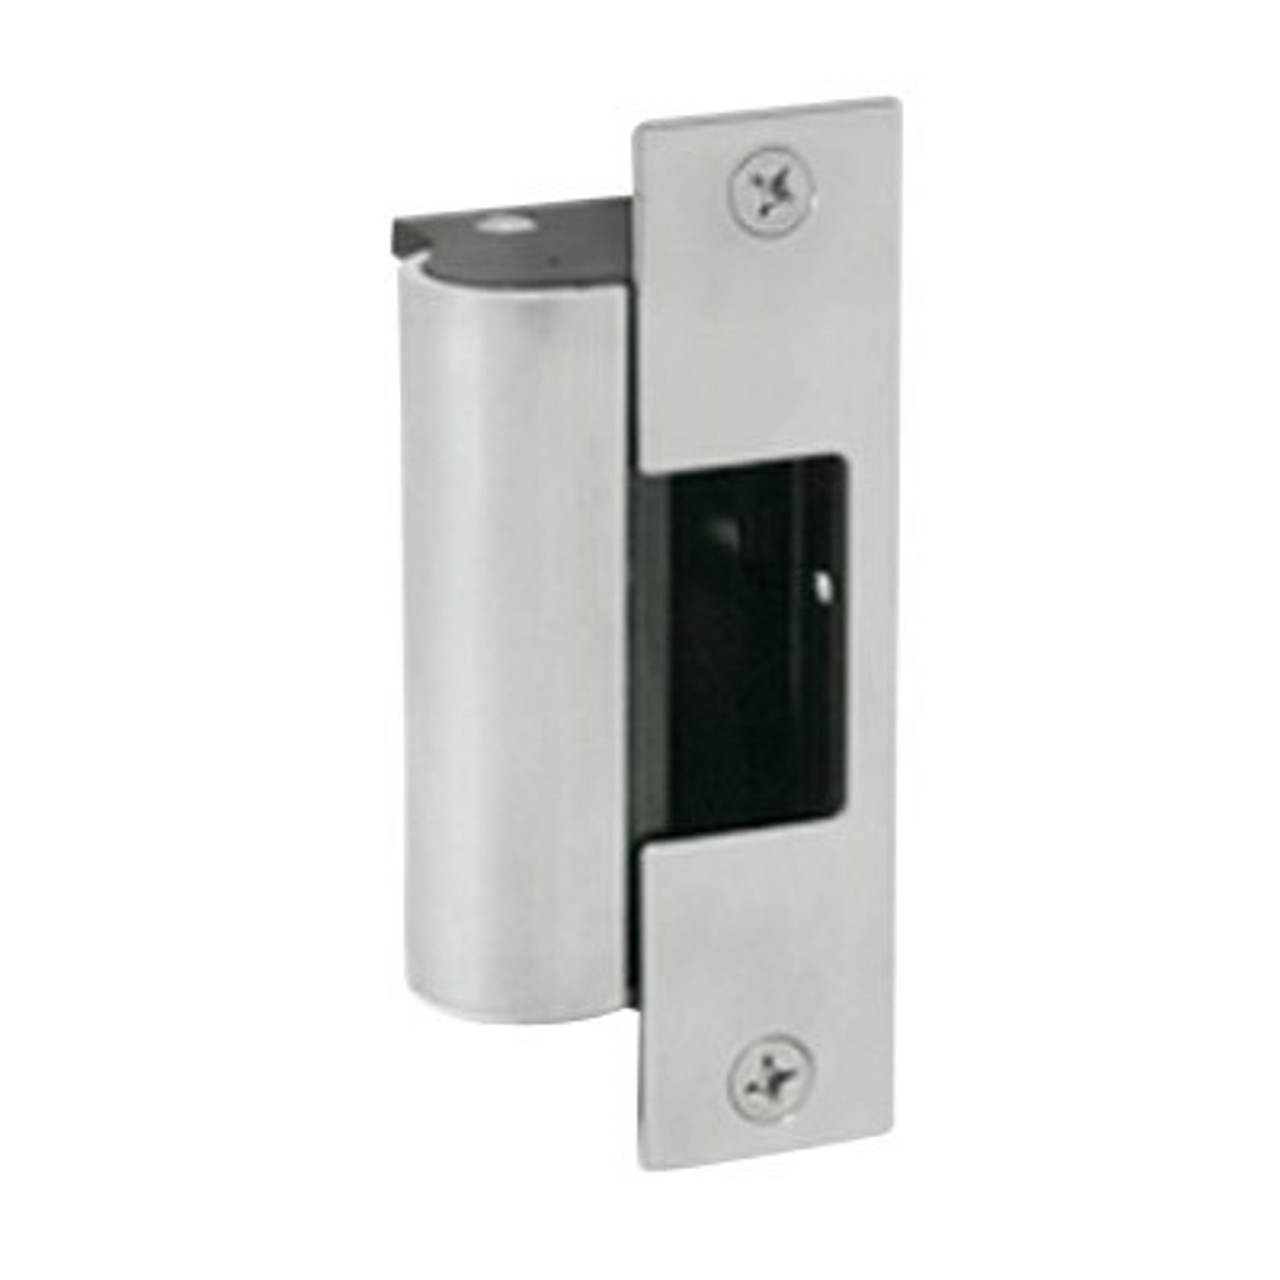 1006CLB-F-630 Hes 1006 Series Complete Electric Strike for Latchbolt Lock in Satin Stainless Finish